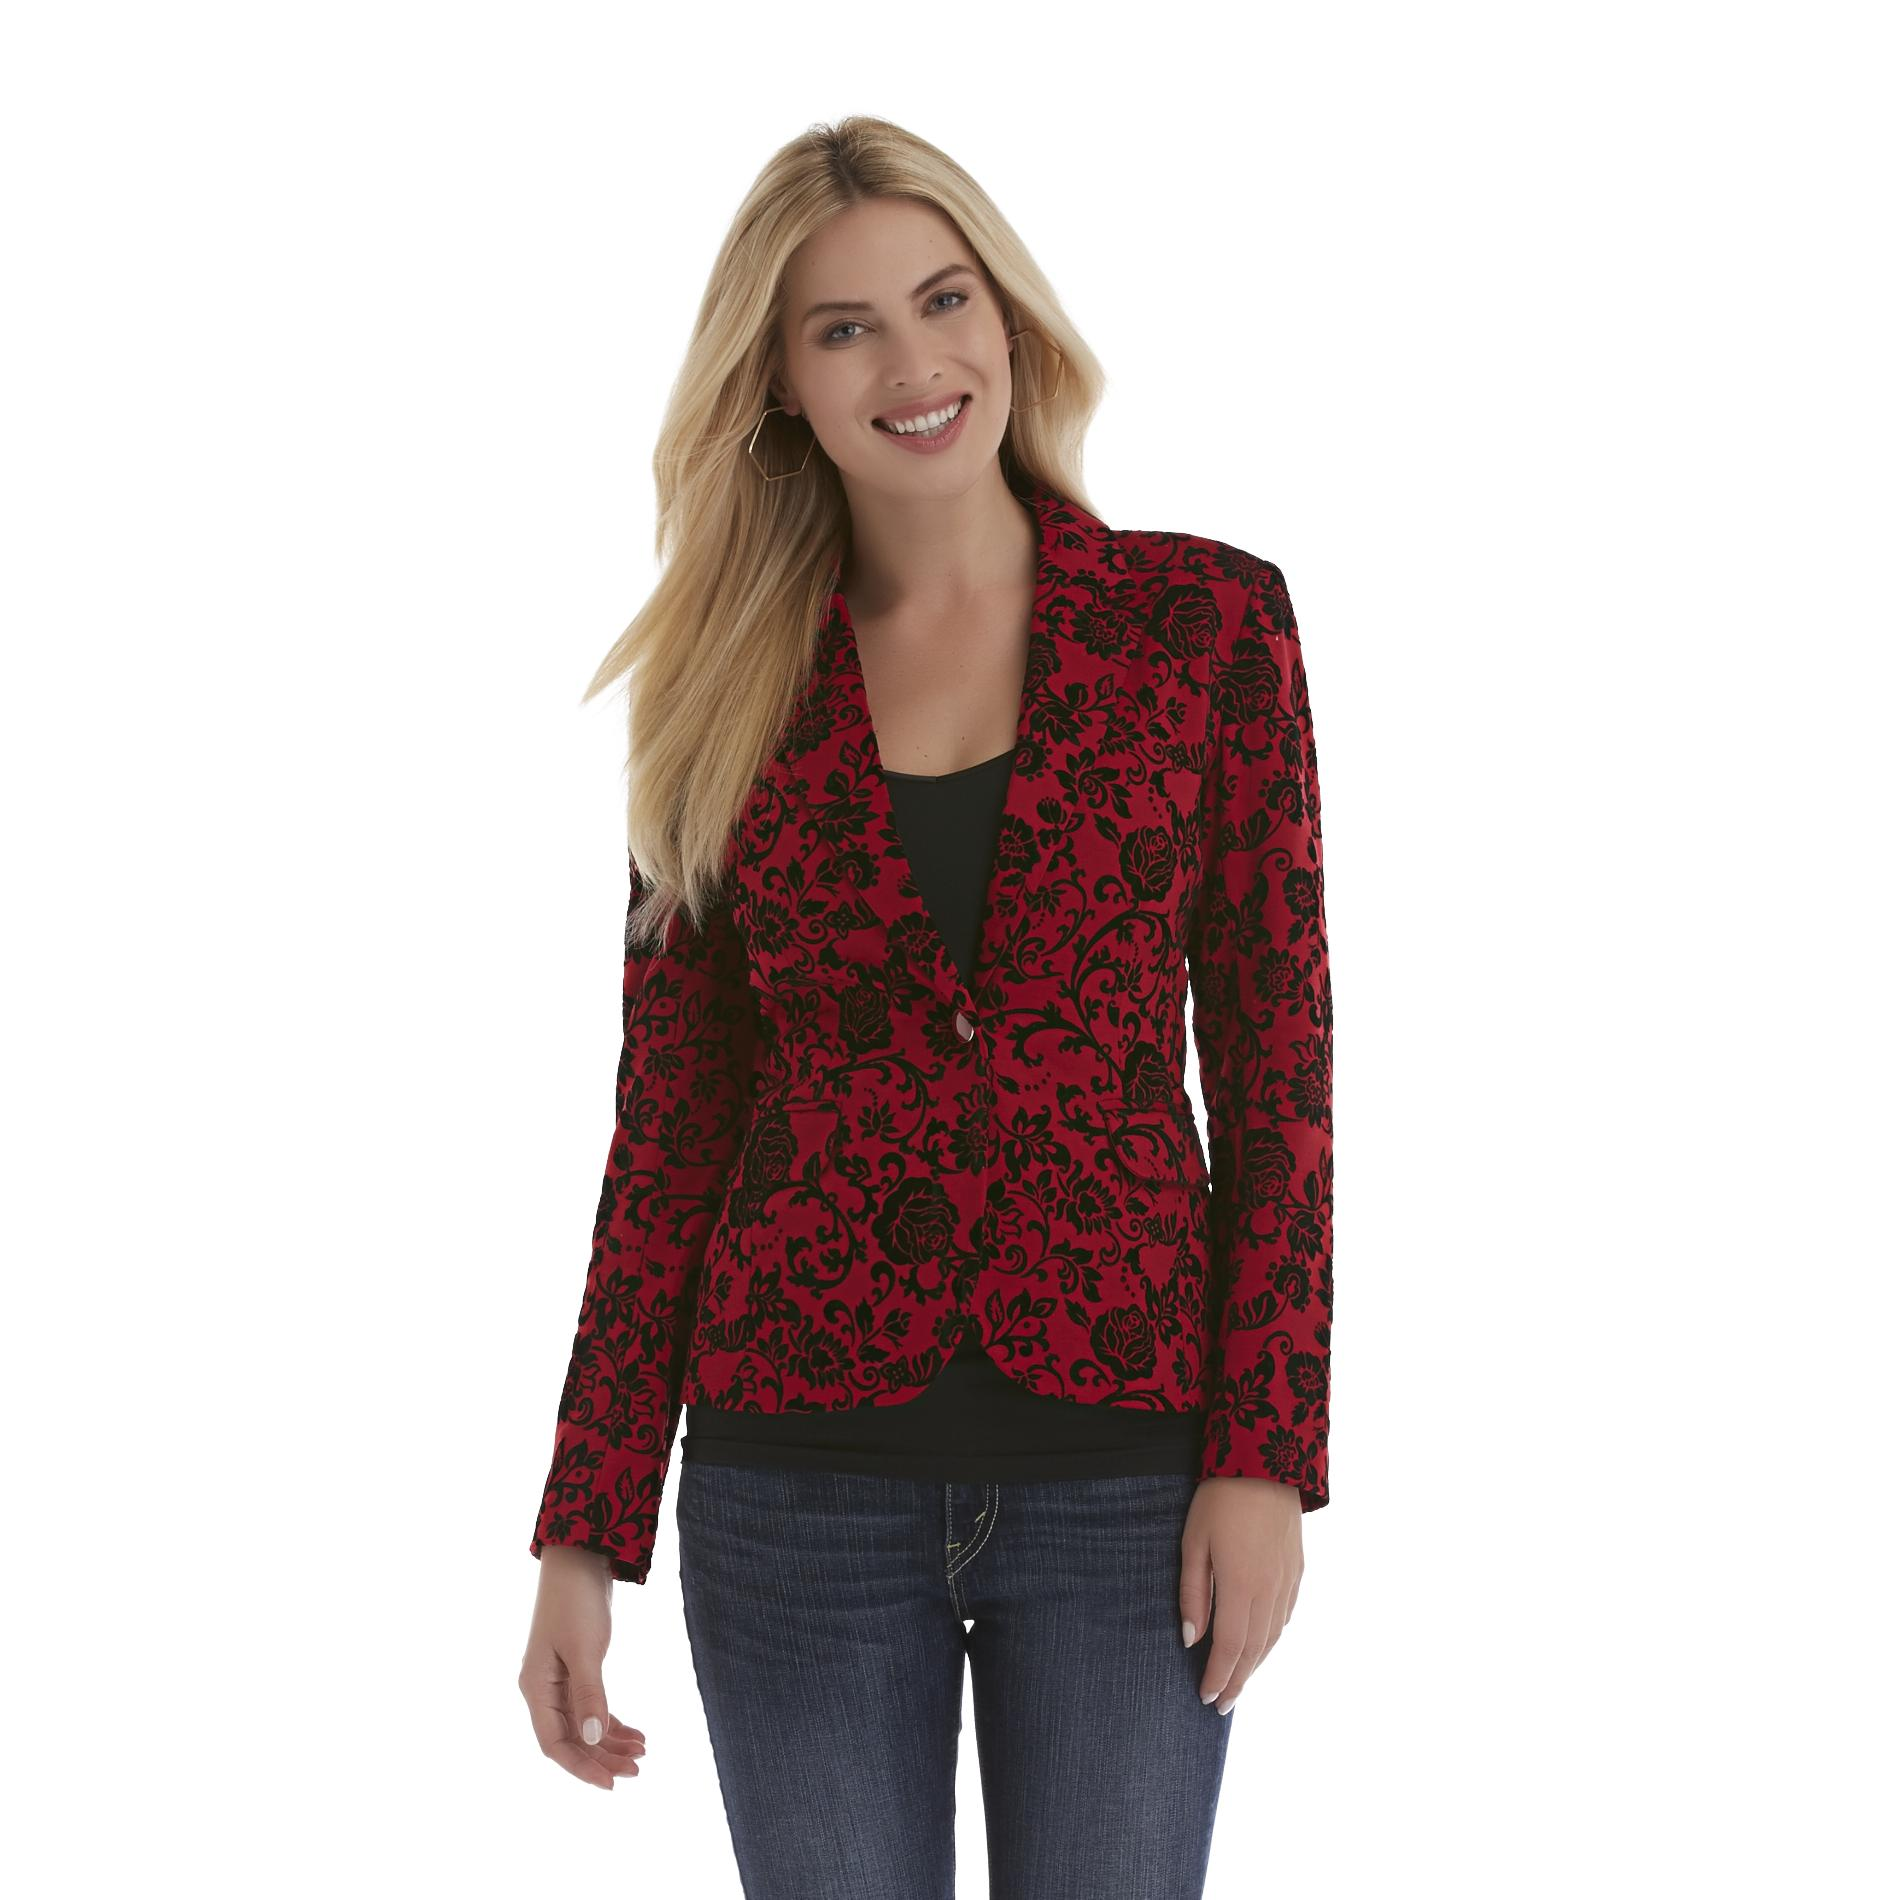 Covington Women's Blazer - Floral at Sears.com